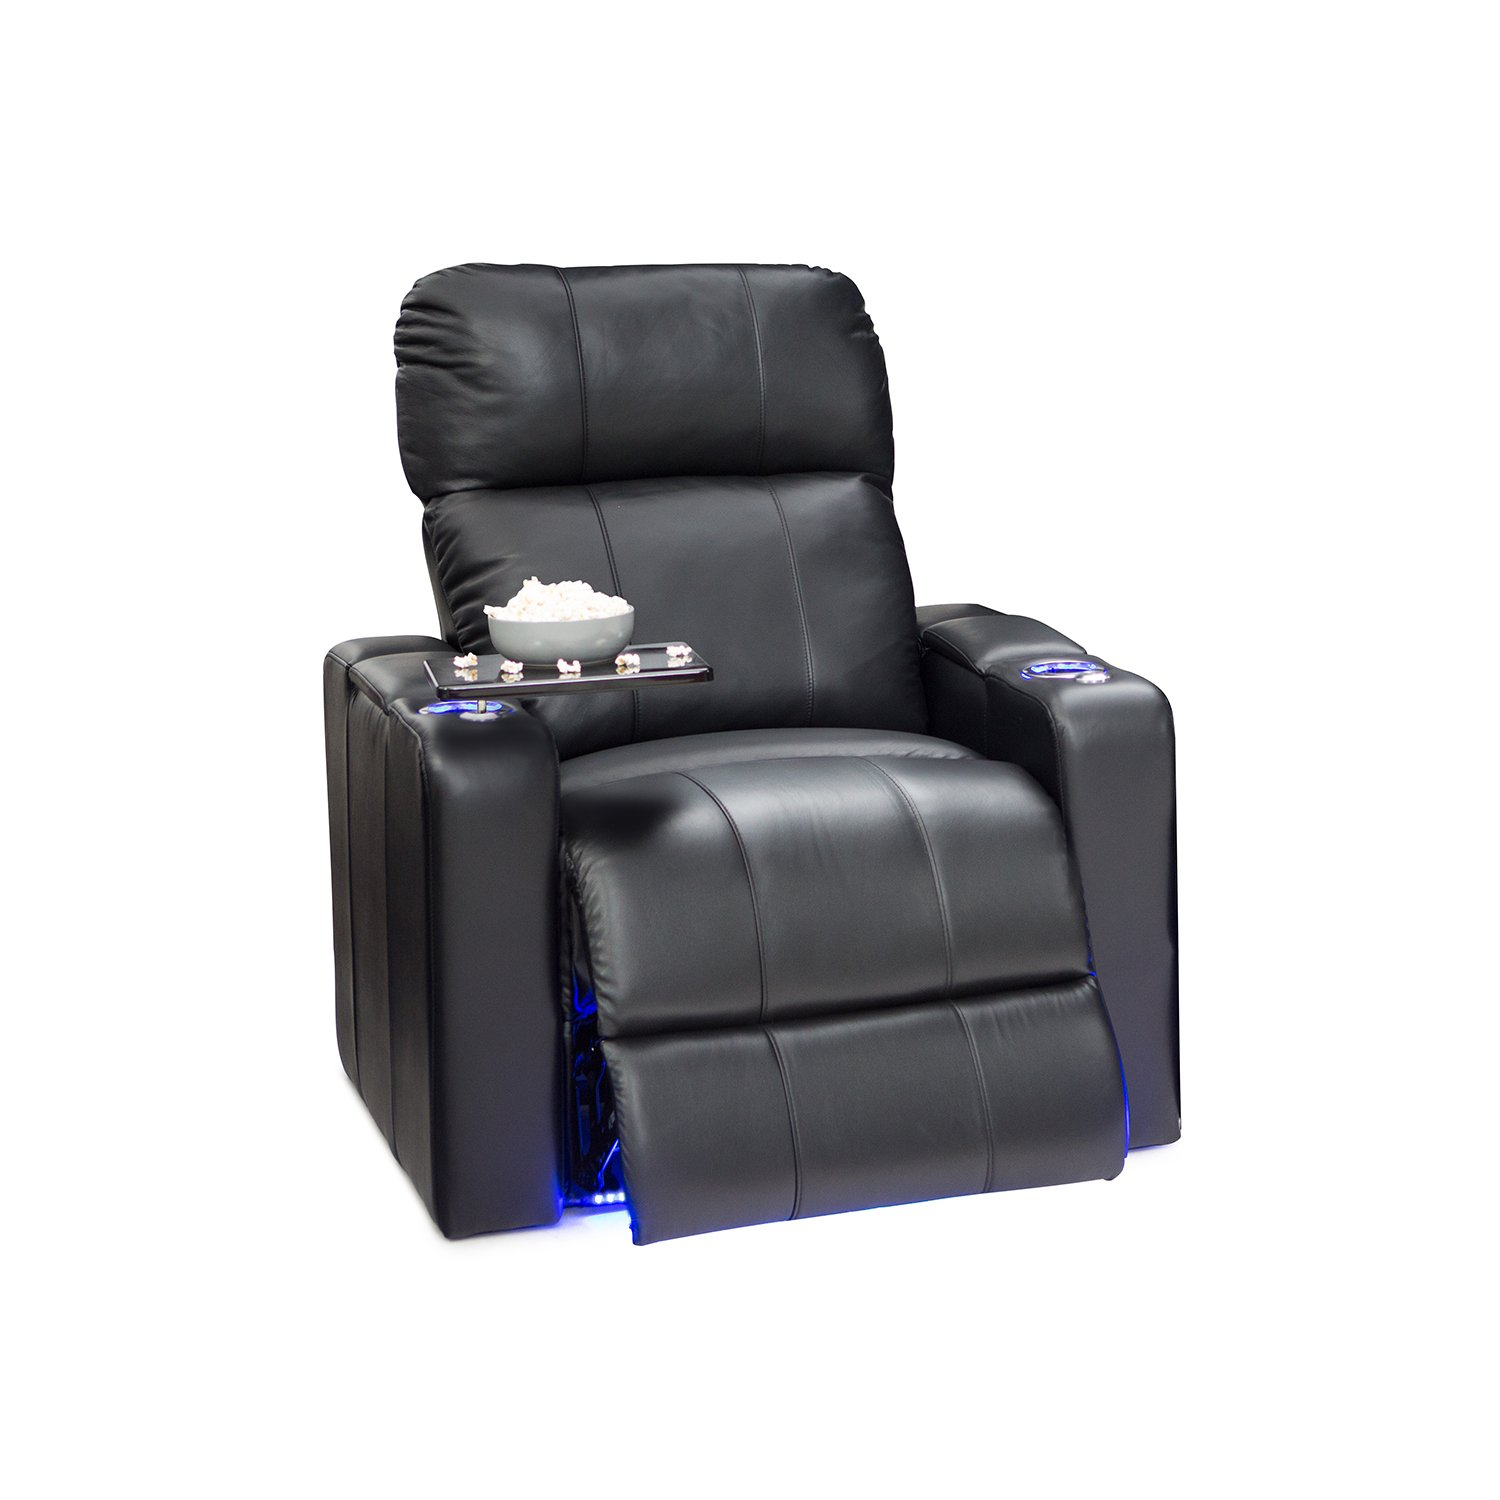 Seatcraft 2208 Monterey Leather Home Theater